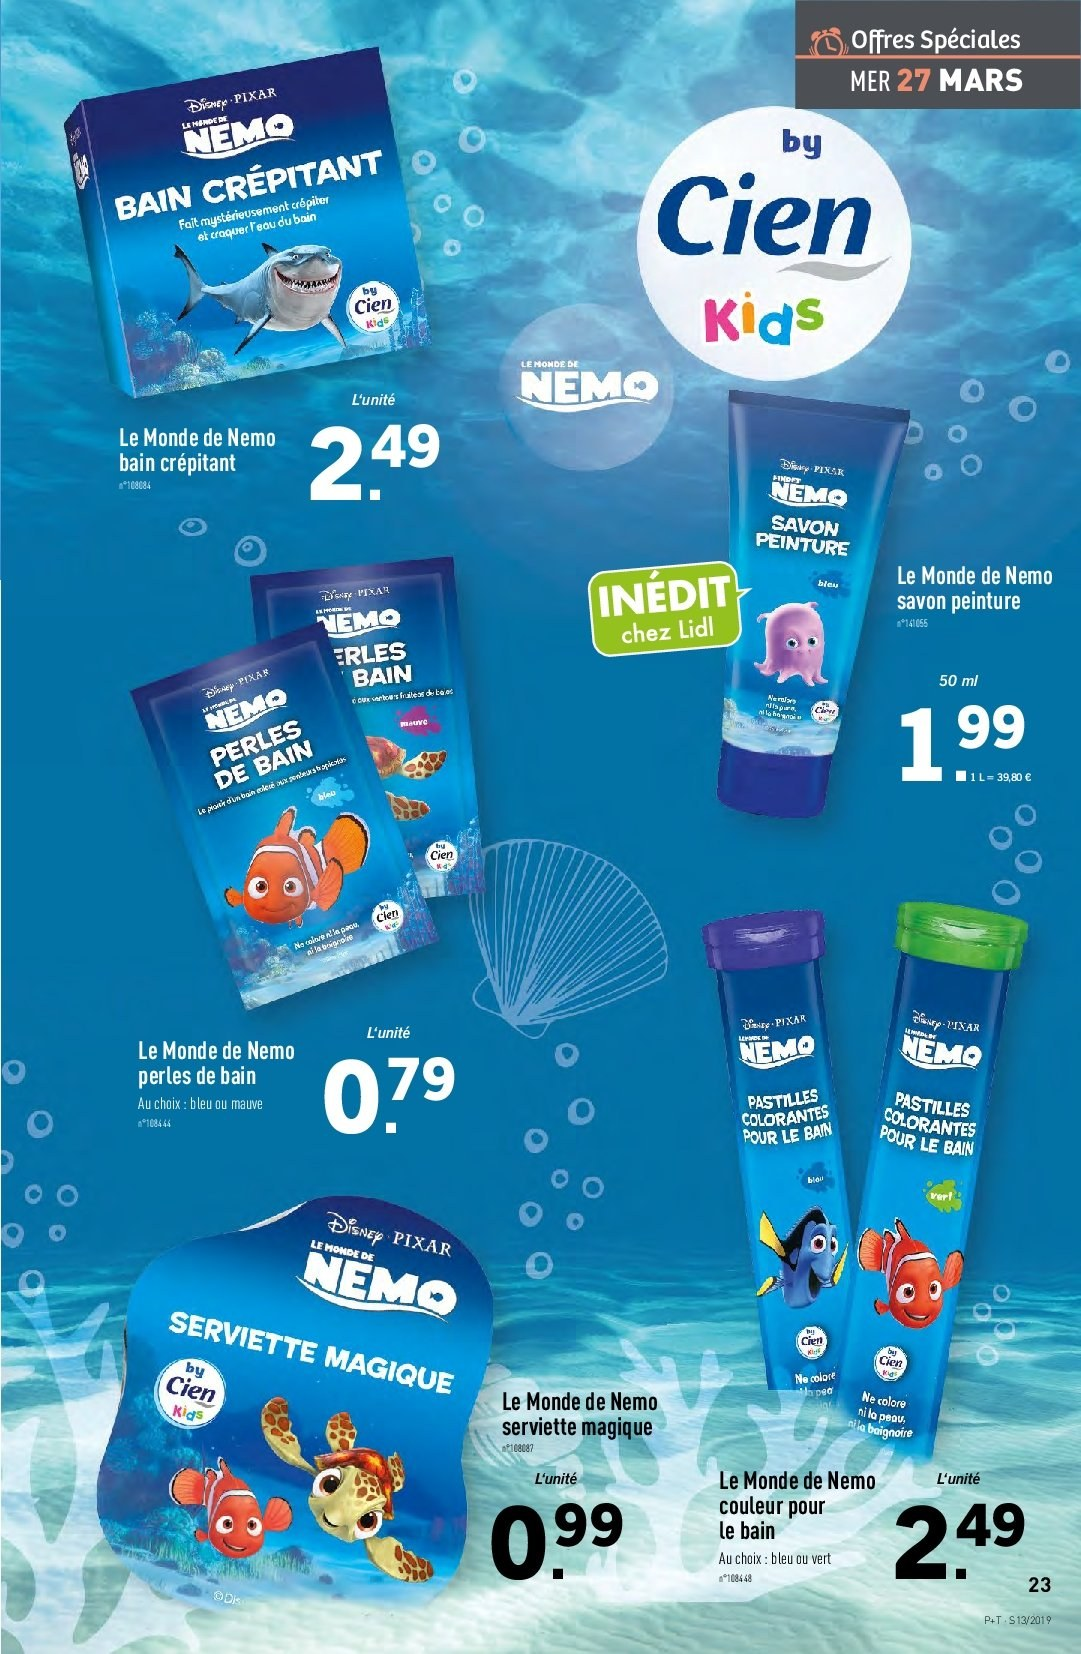 Catalogue Lidl - 27.03.2019 - 02.04.2019. Page 23.